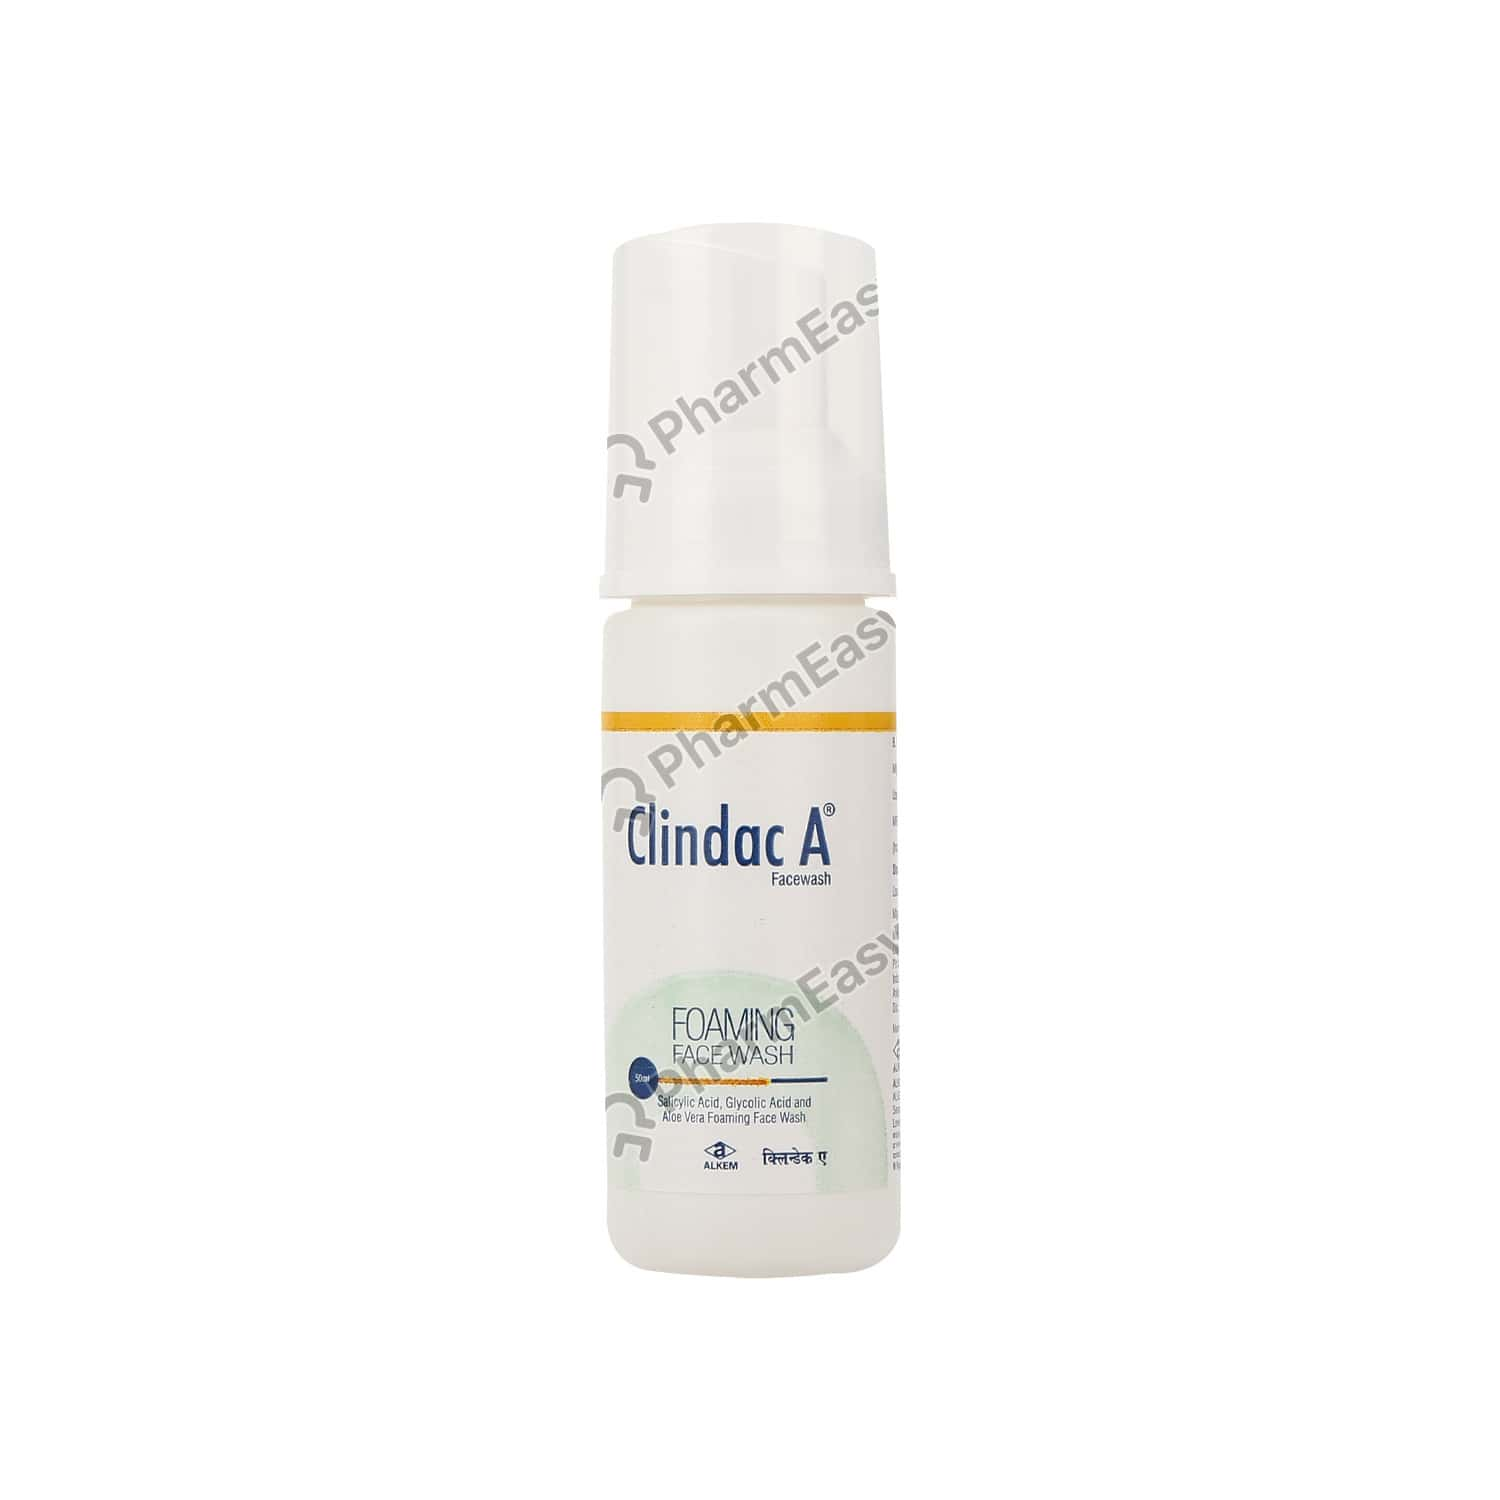 Clindac A Foaming Face Wash 50ml